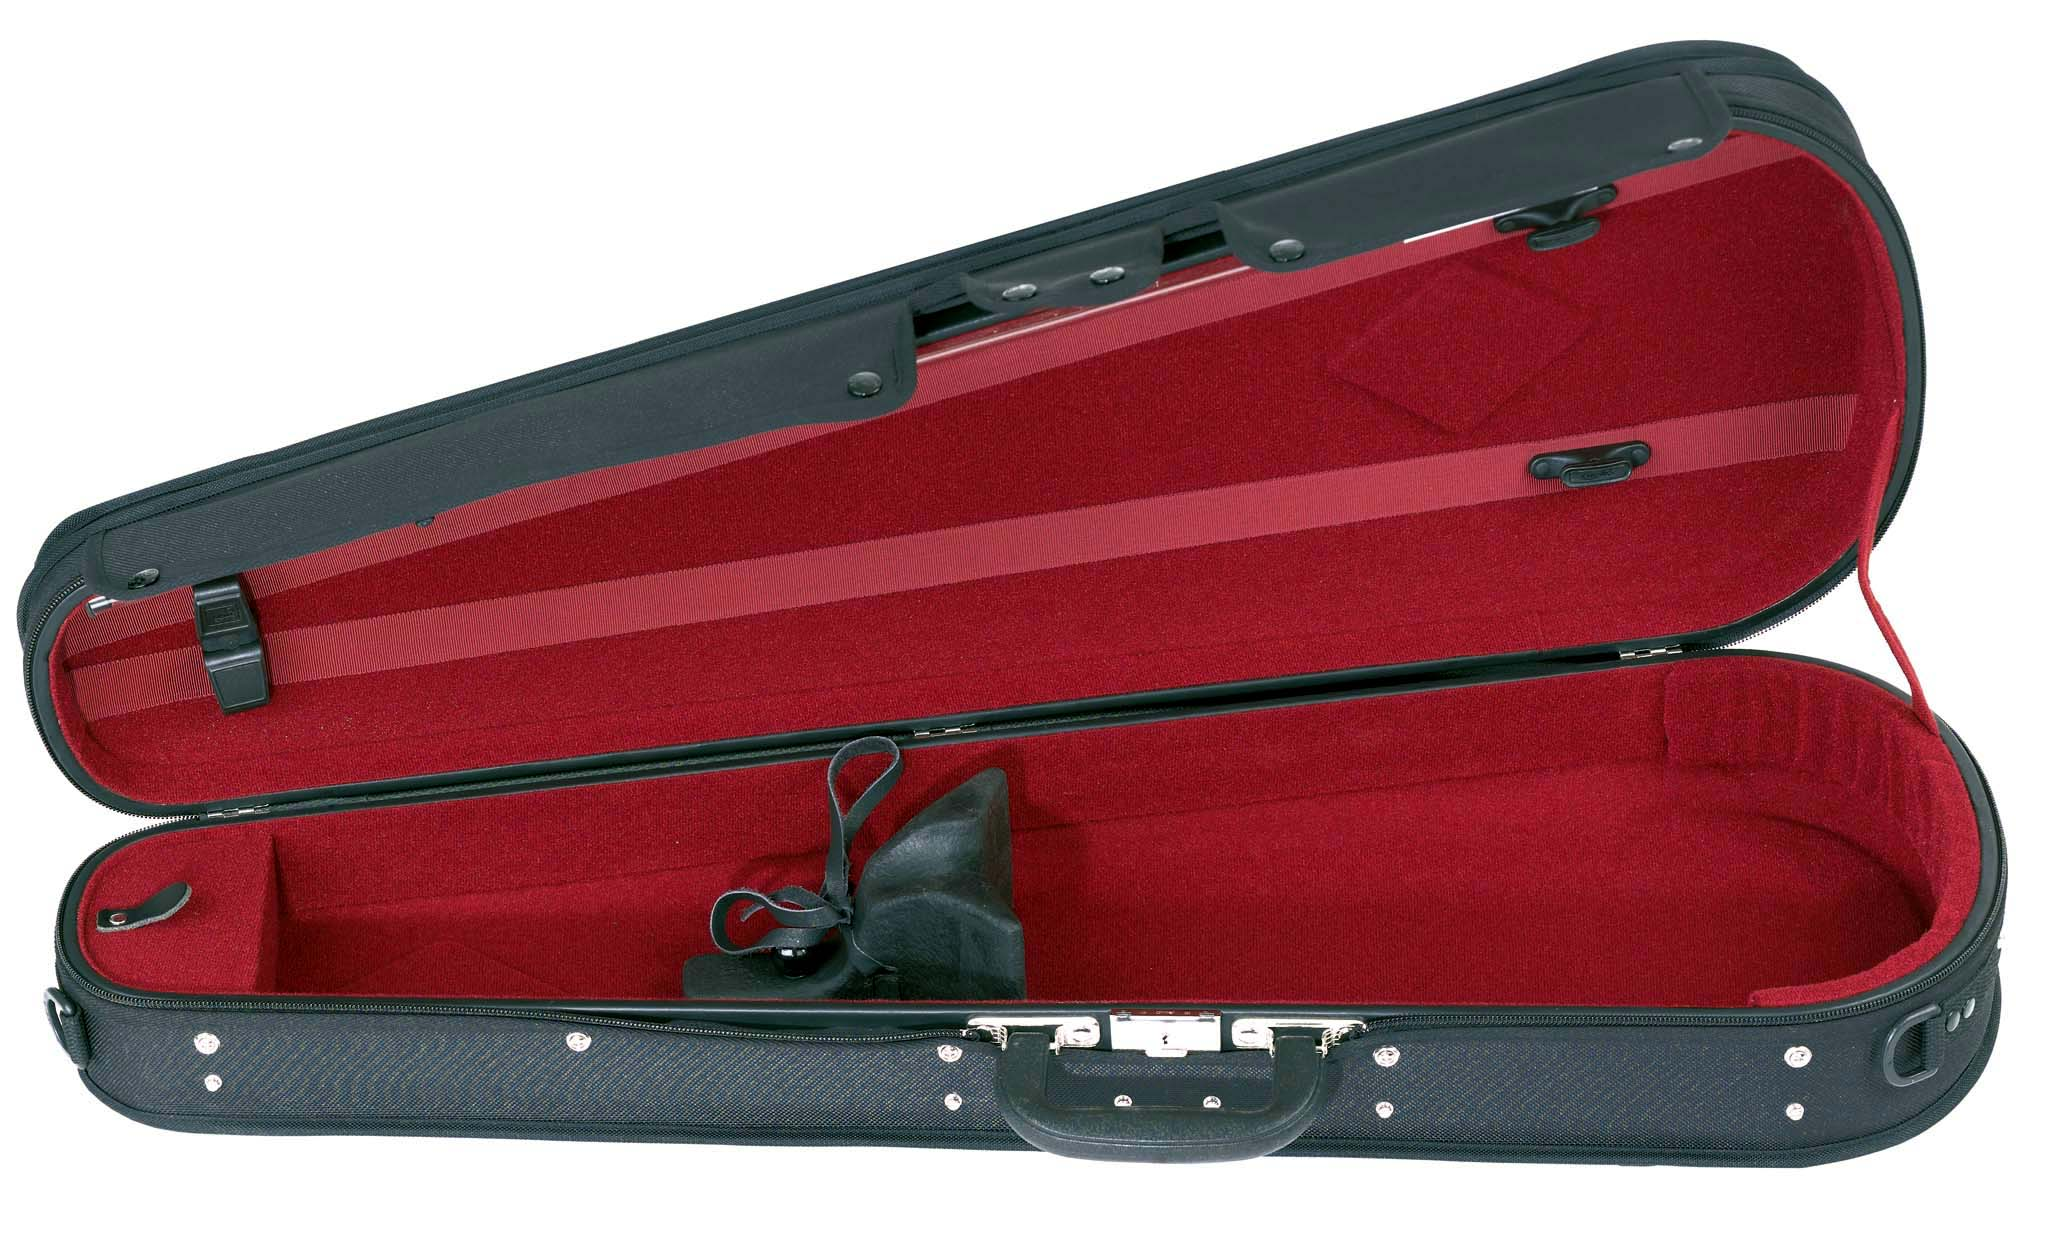 Gewa Varianta Viola Case for sale at Bridgewood and Neitzert London